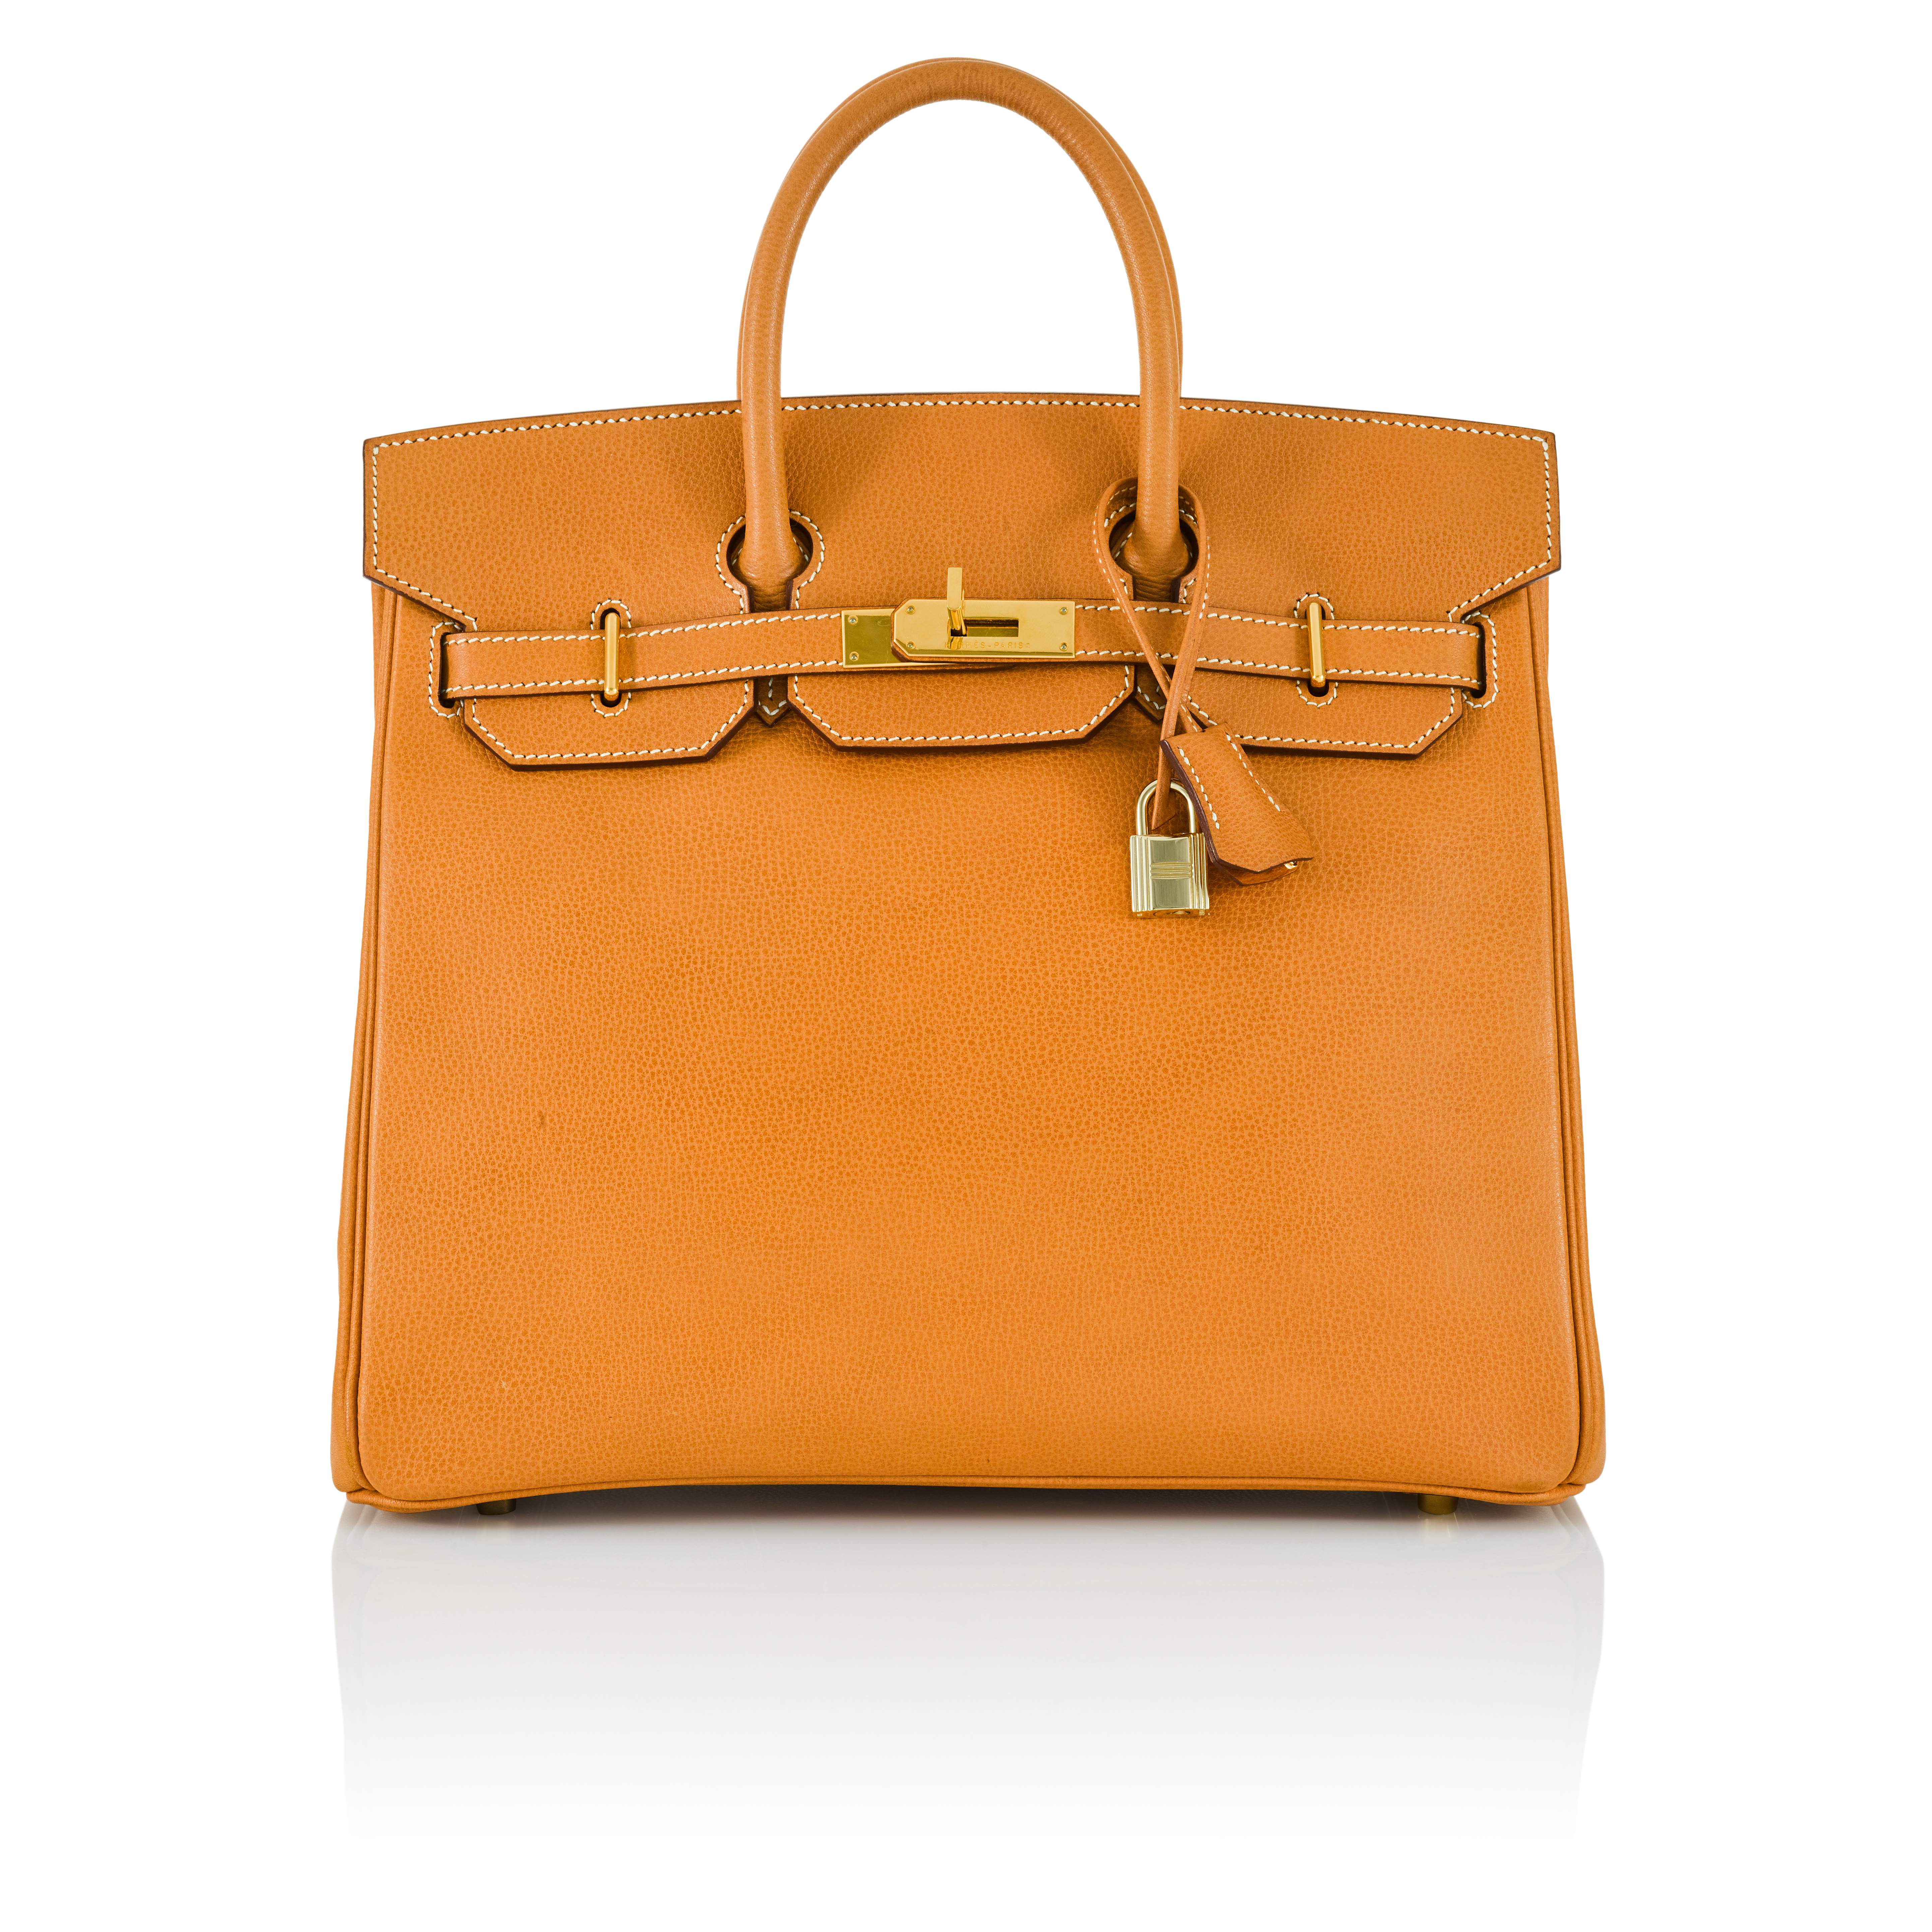 View full screen - View 1 of Lot 59. Gold HAC Birkin 32cm in Ardennes Leather with Gold Hardware, 2004.